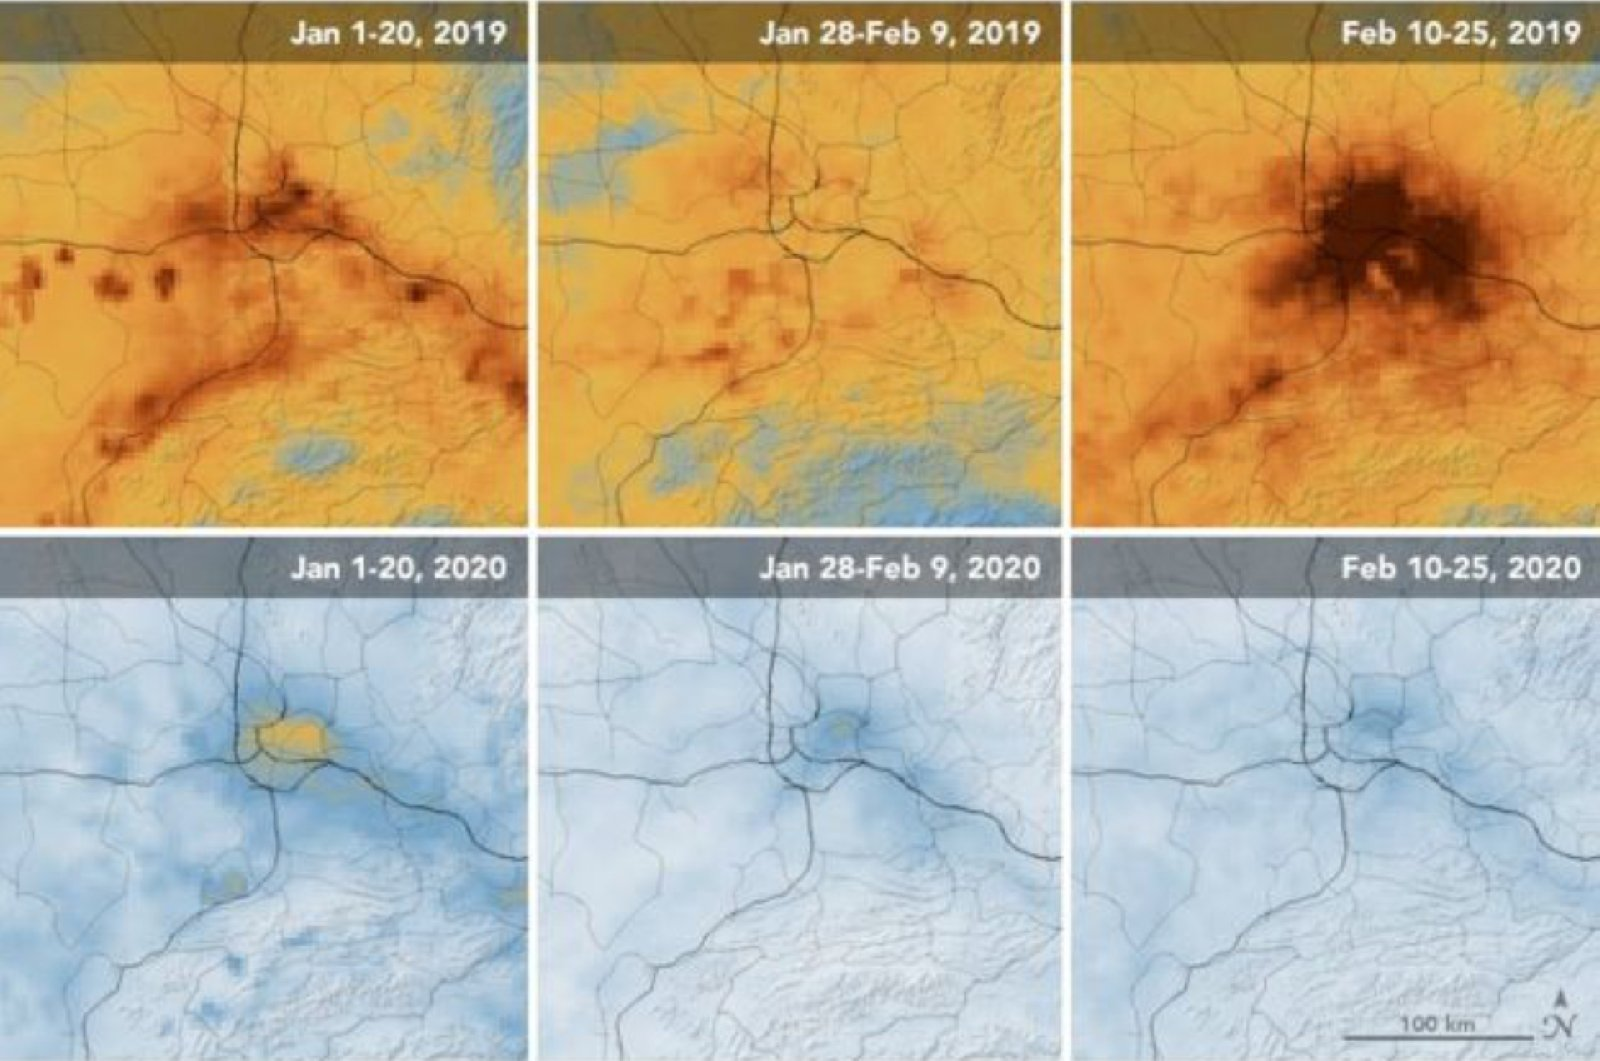 NASA footage shows pollution levels in Wuhan, China